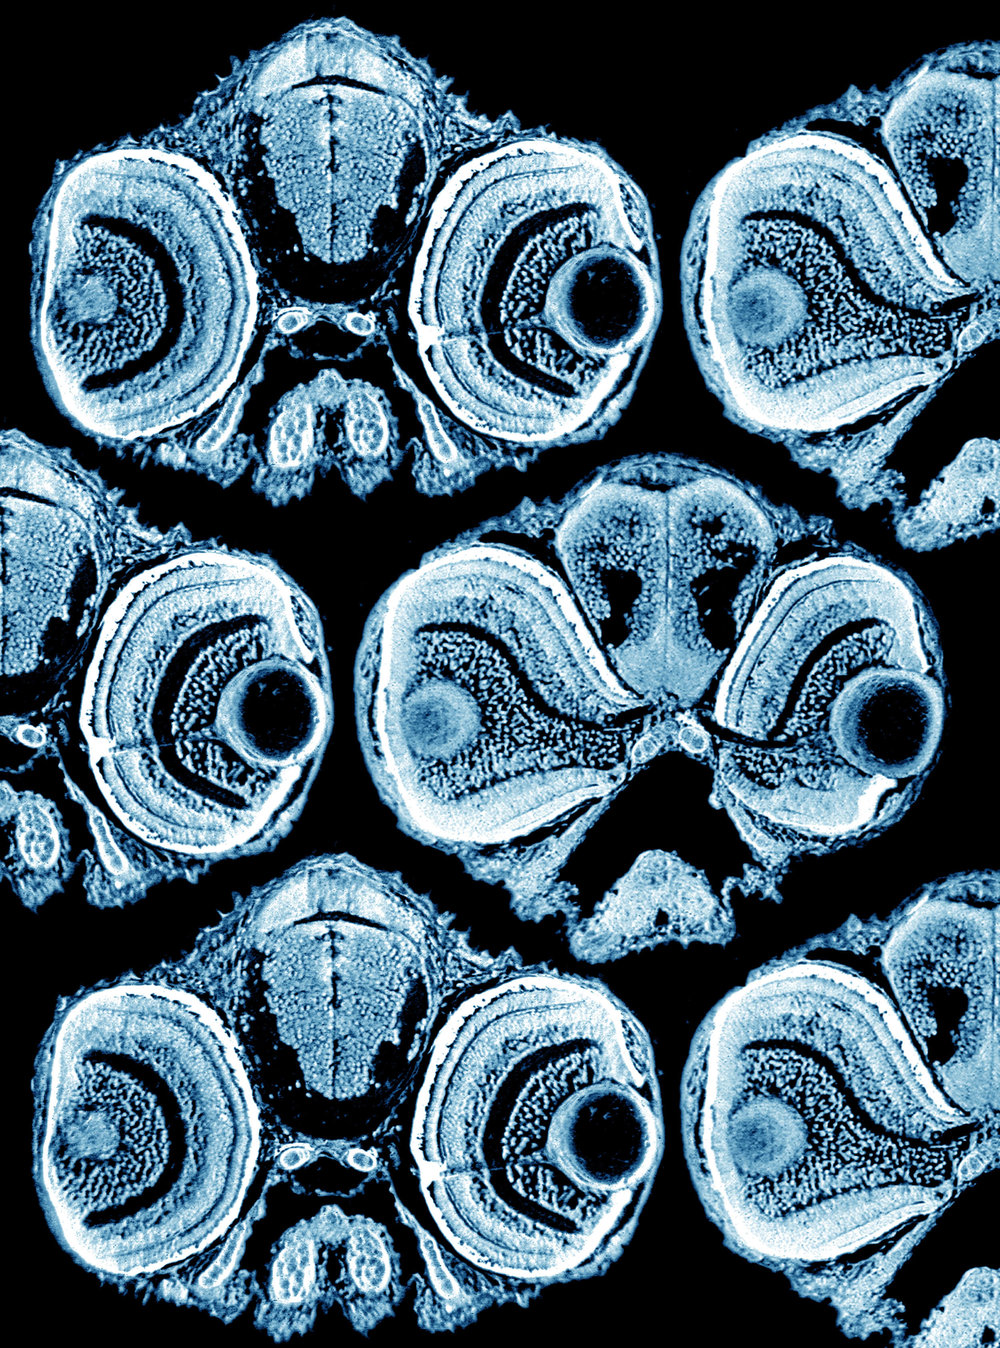 Transverse sections of zebrafish heads frontal view (blue) (cover)